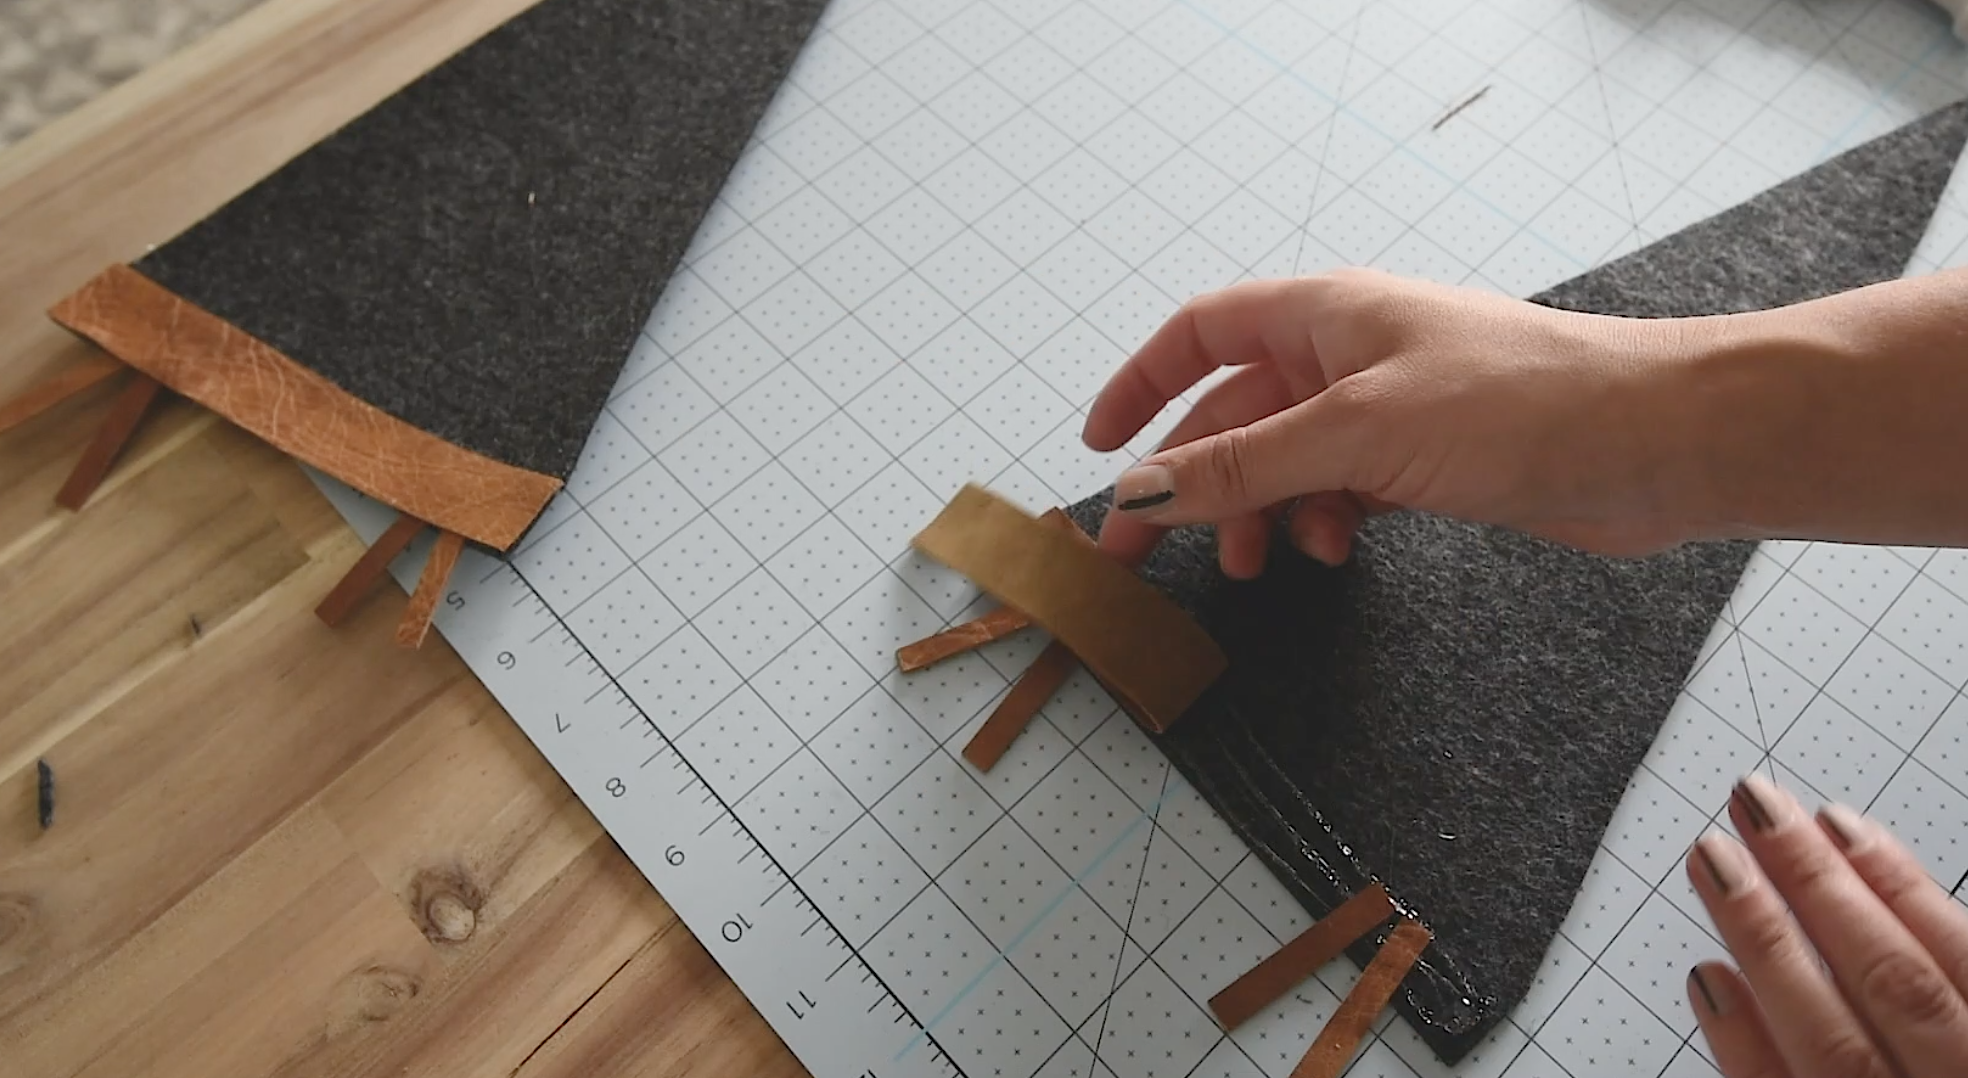 hot glue leather to the felt pennant